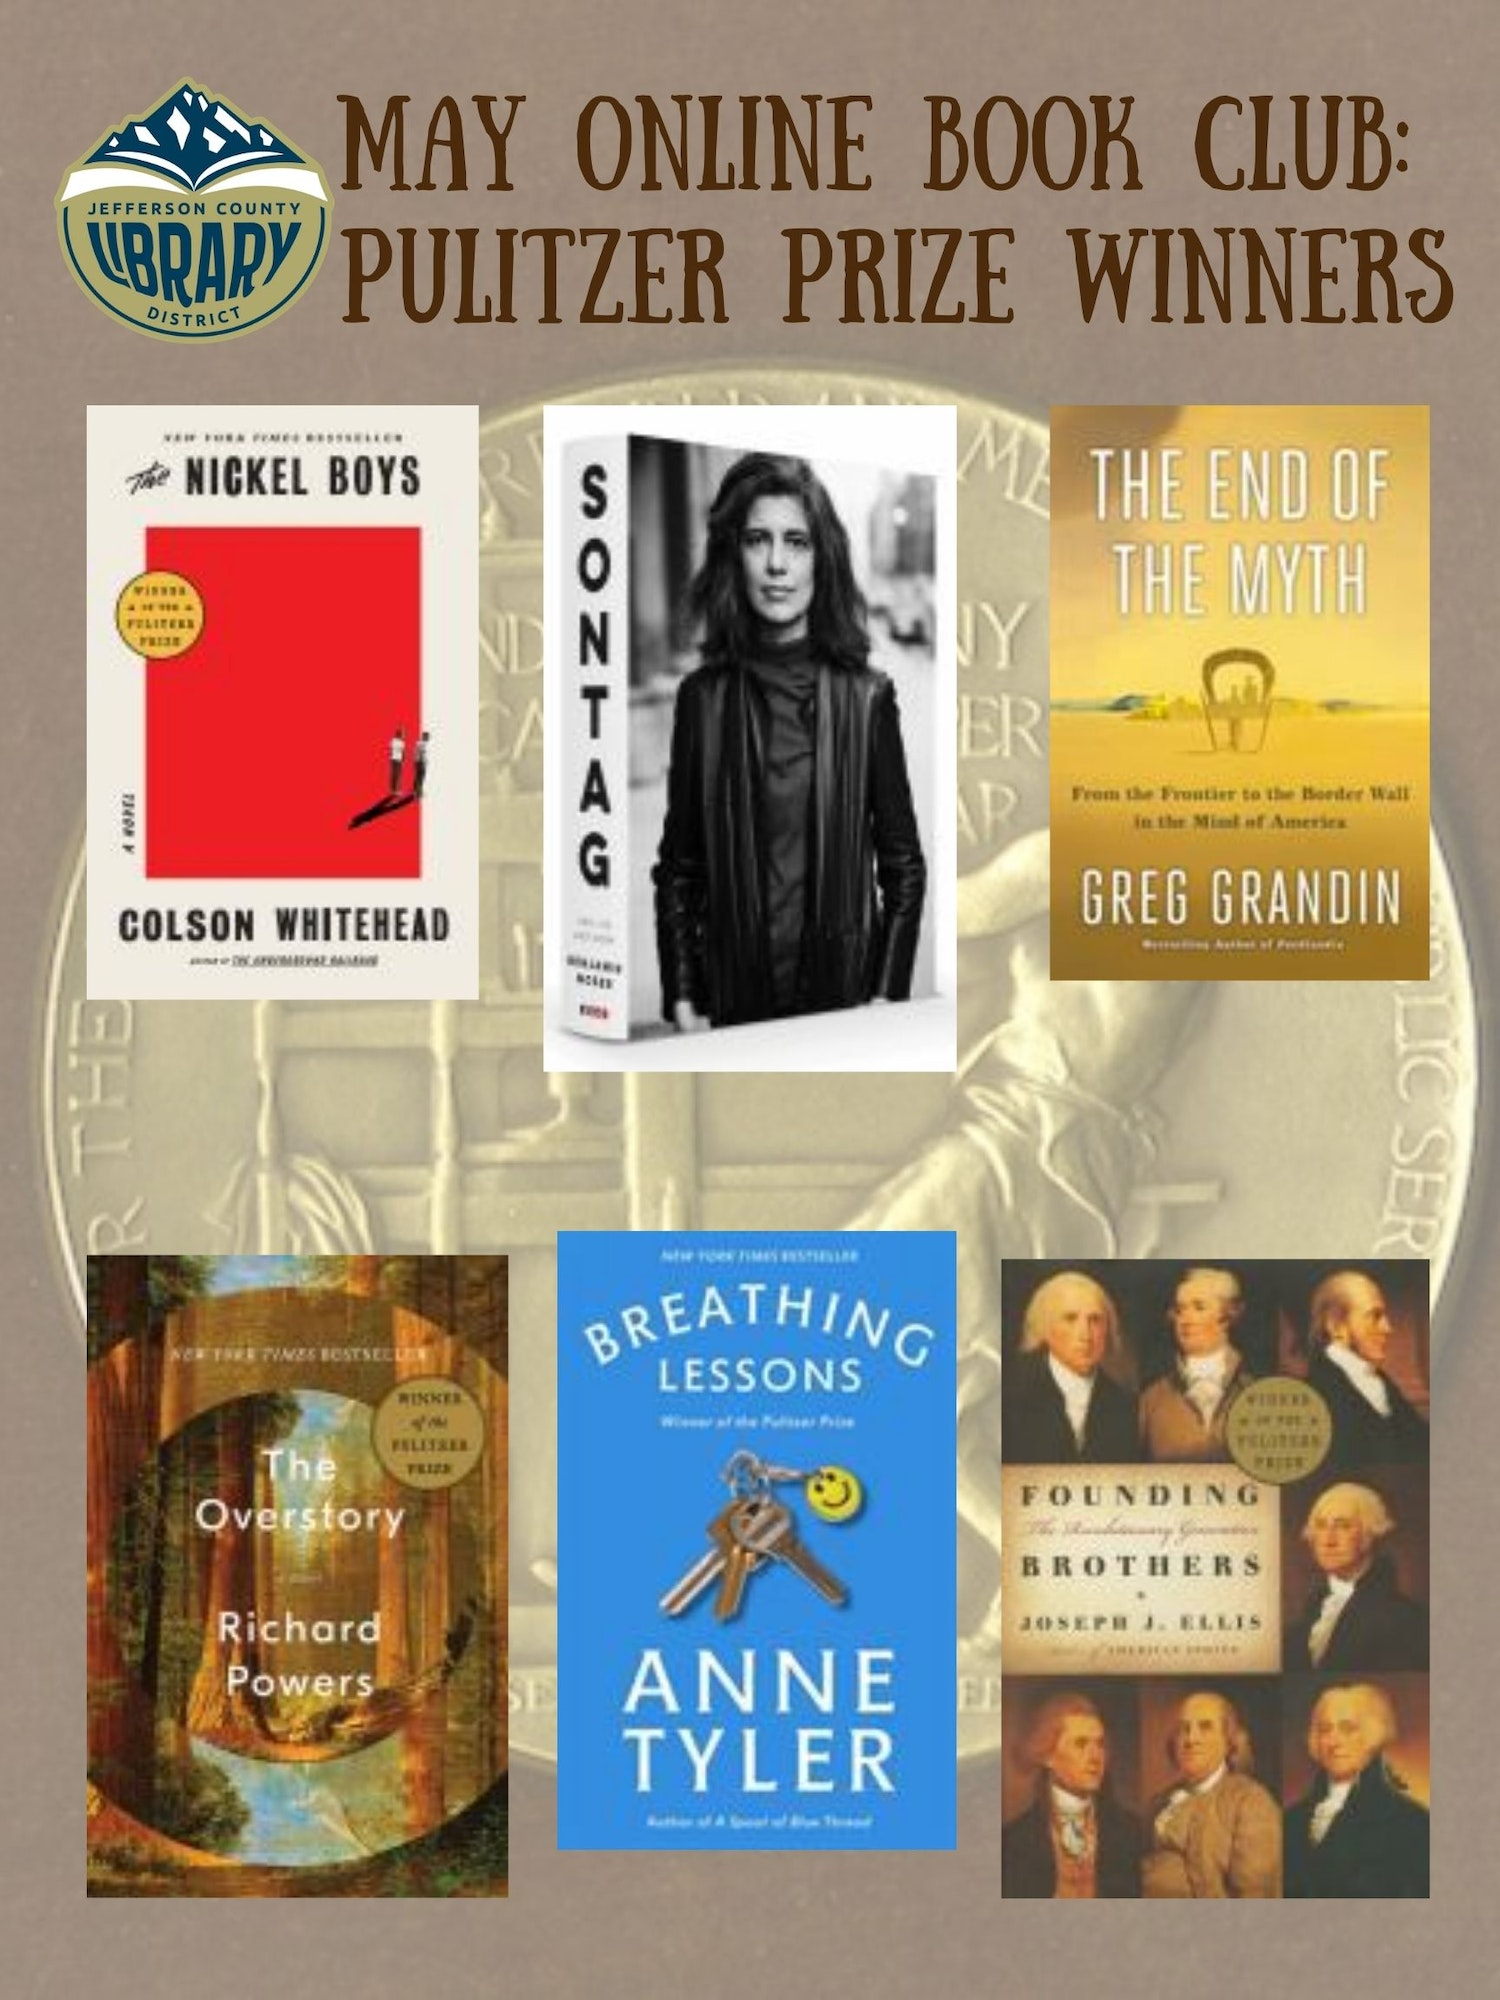 May, book club , online, pulitzer prize.